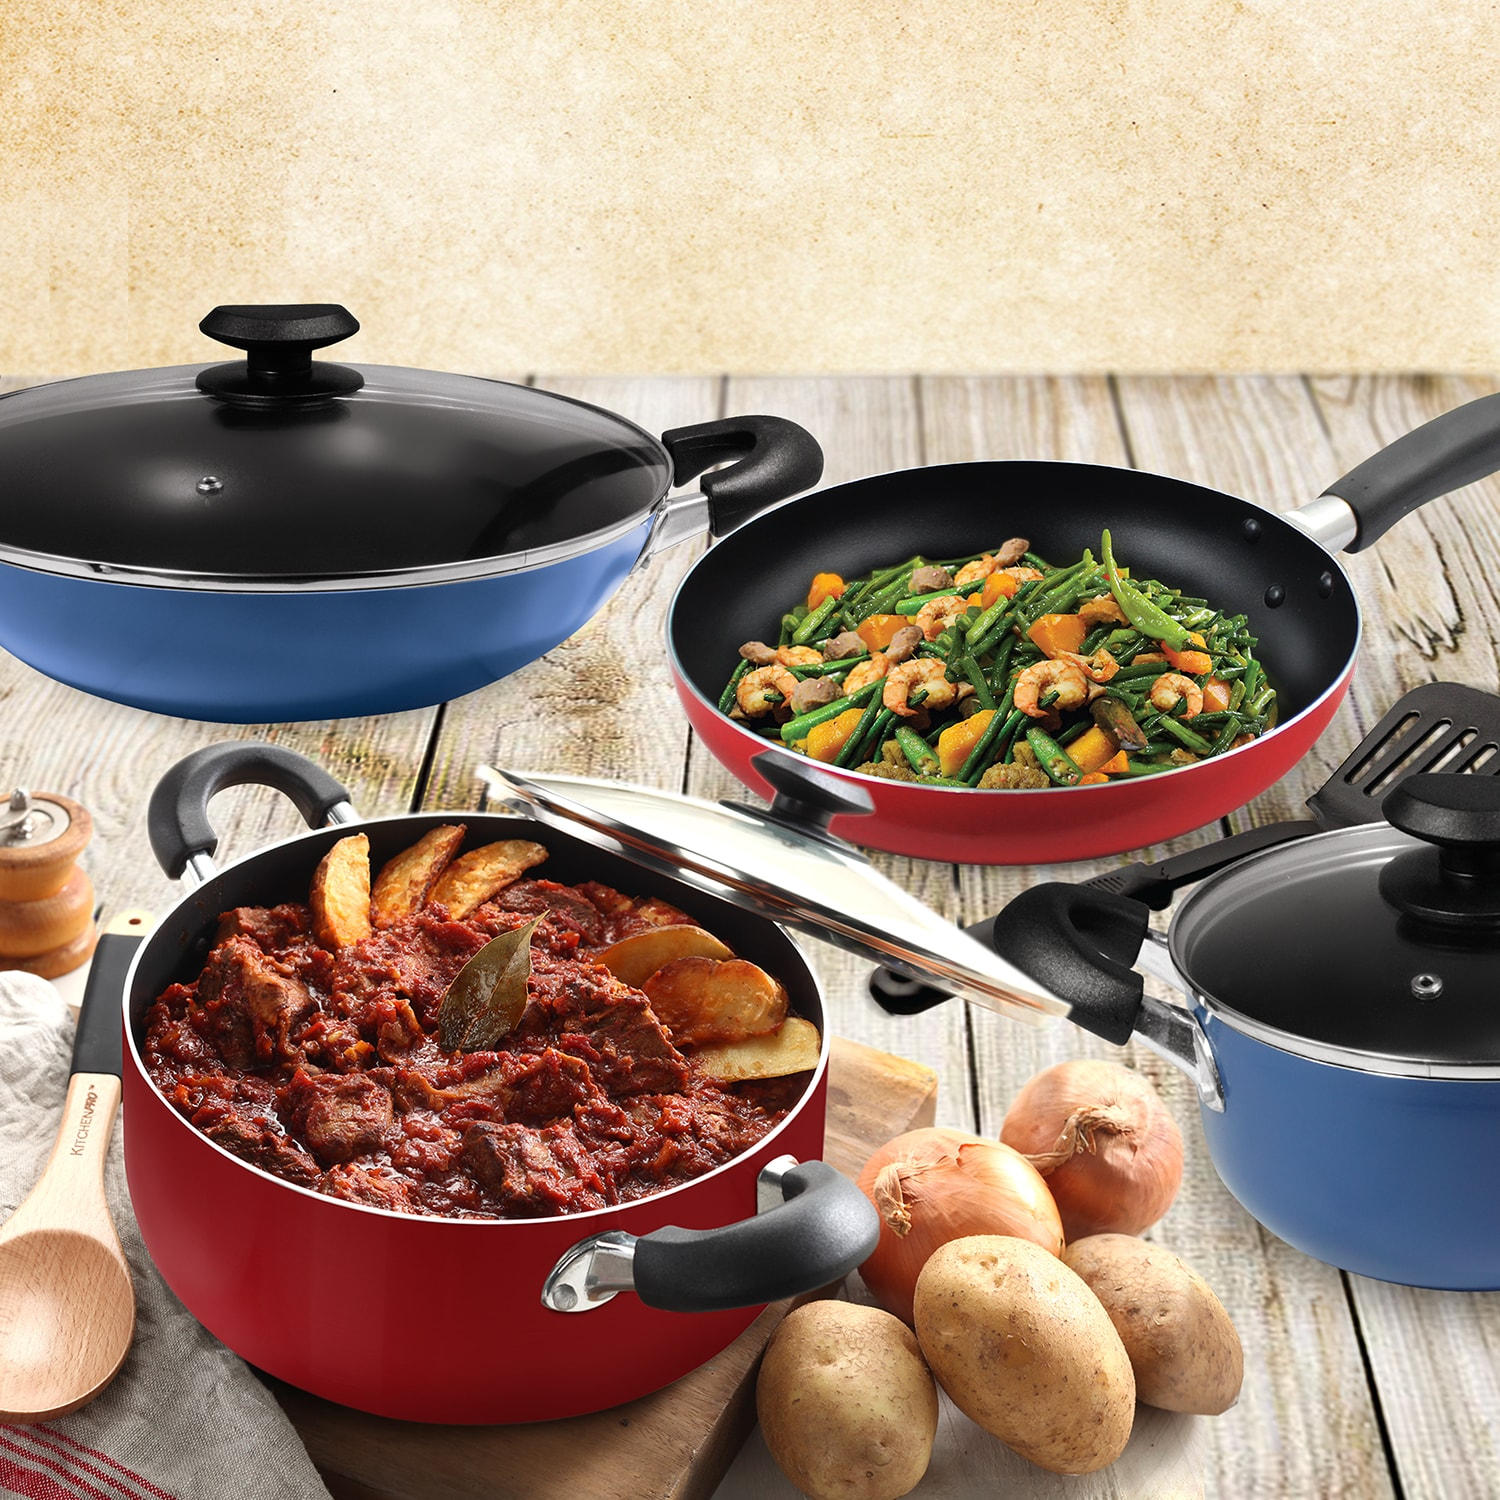 Masflex Classic Series Aluminum Non-stick Induction Cookware